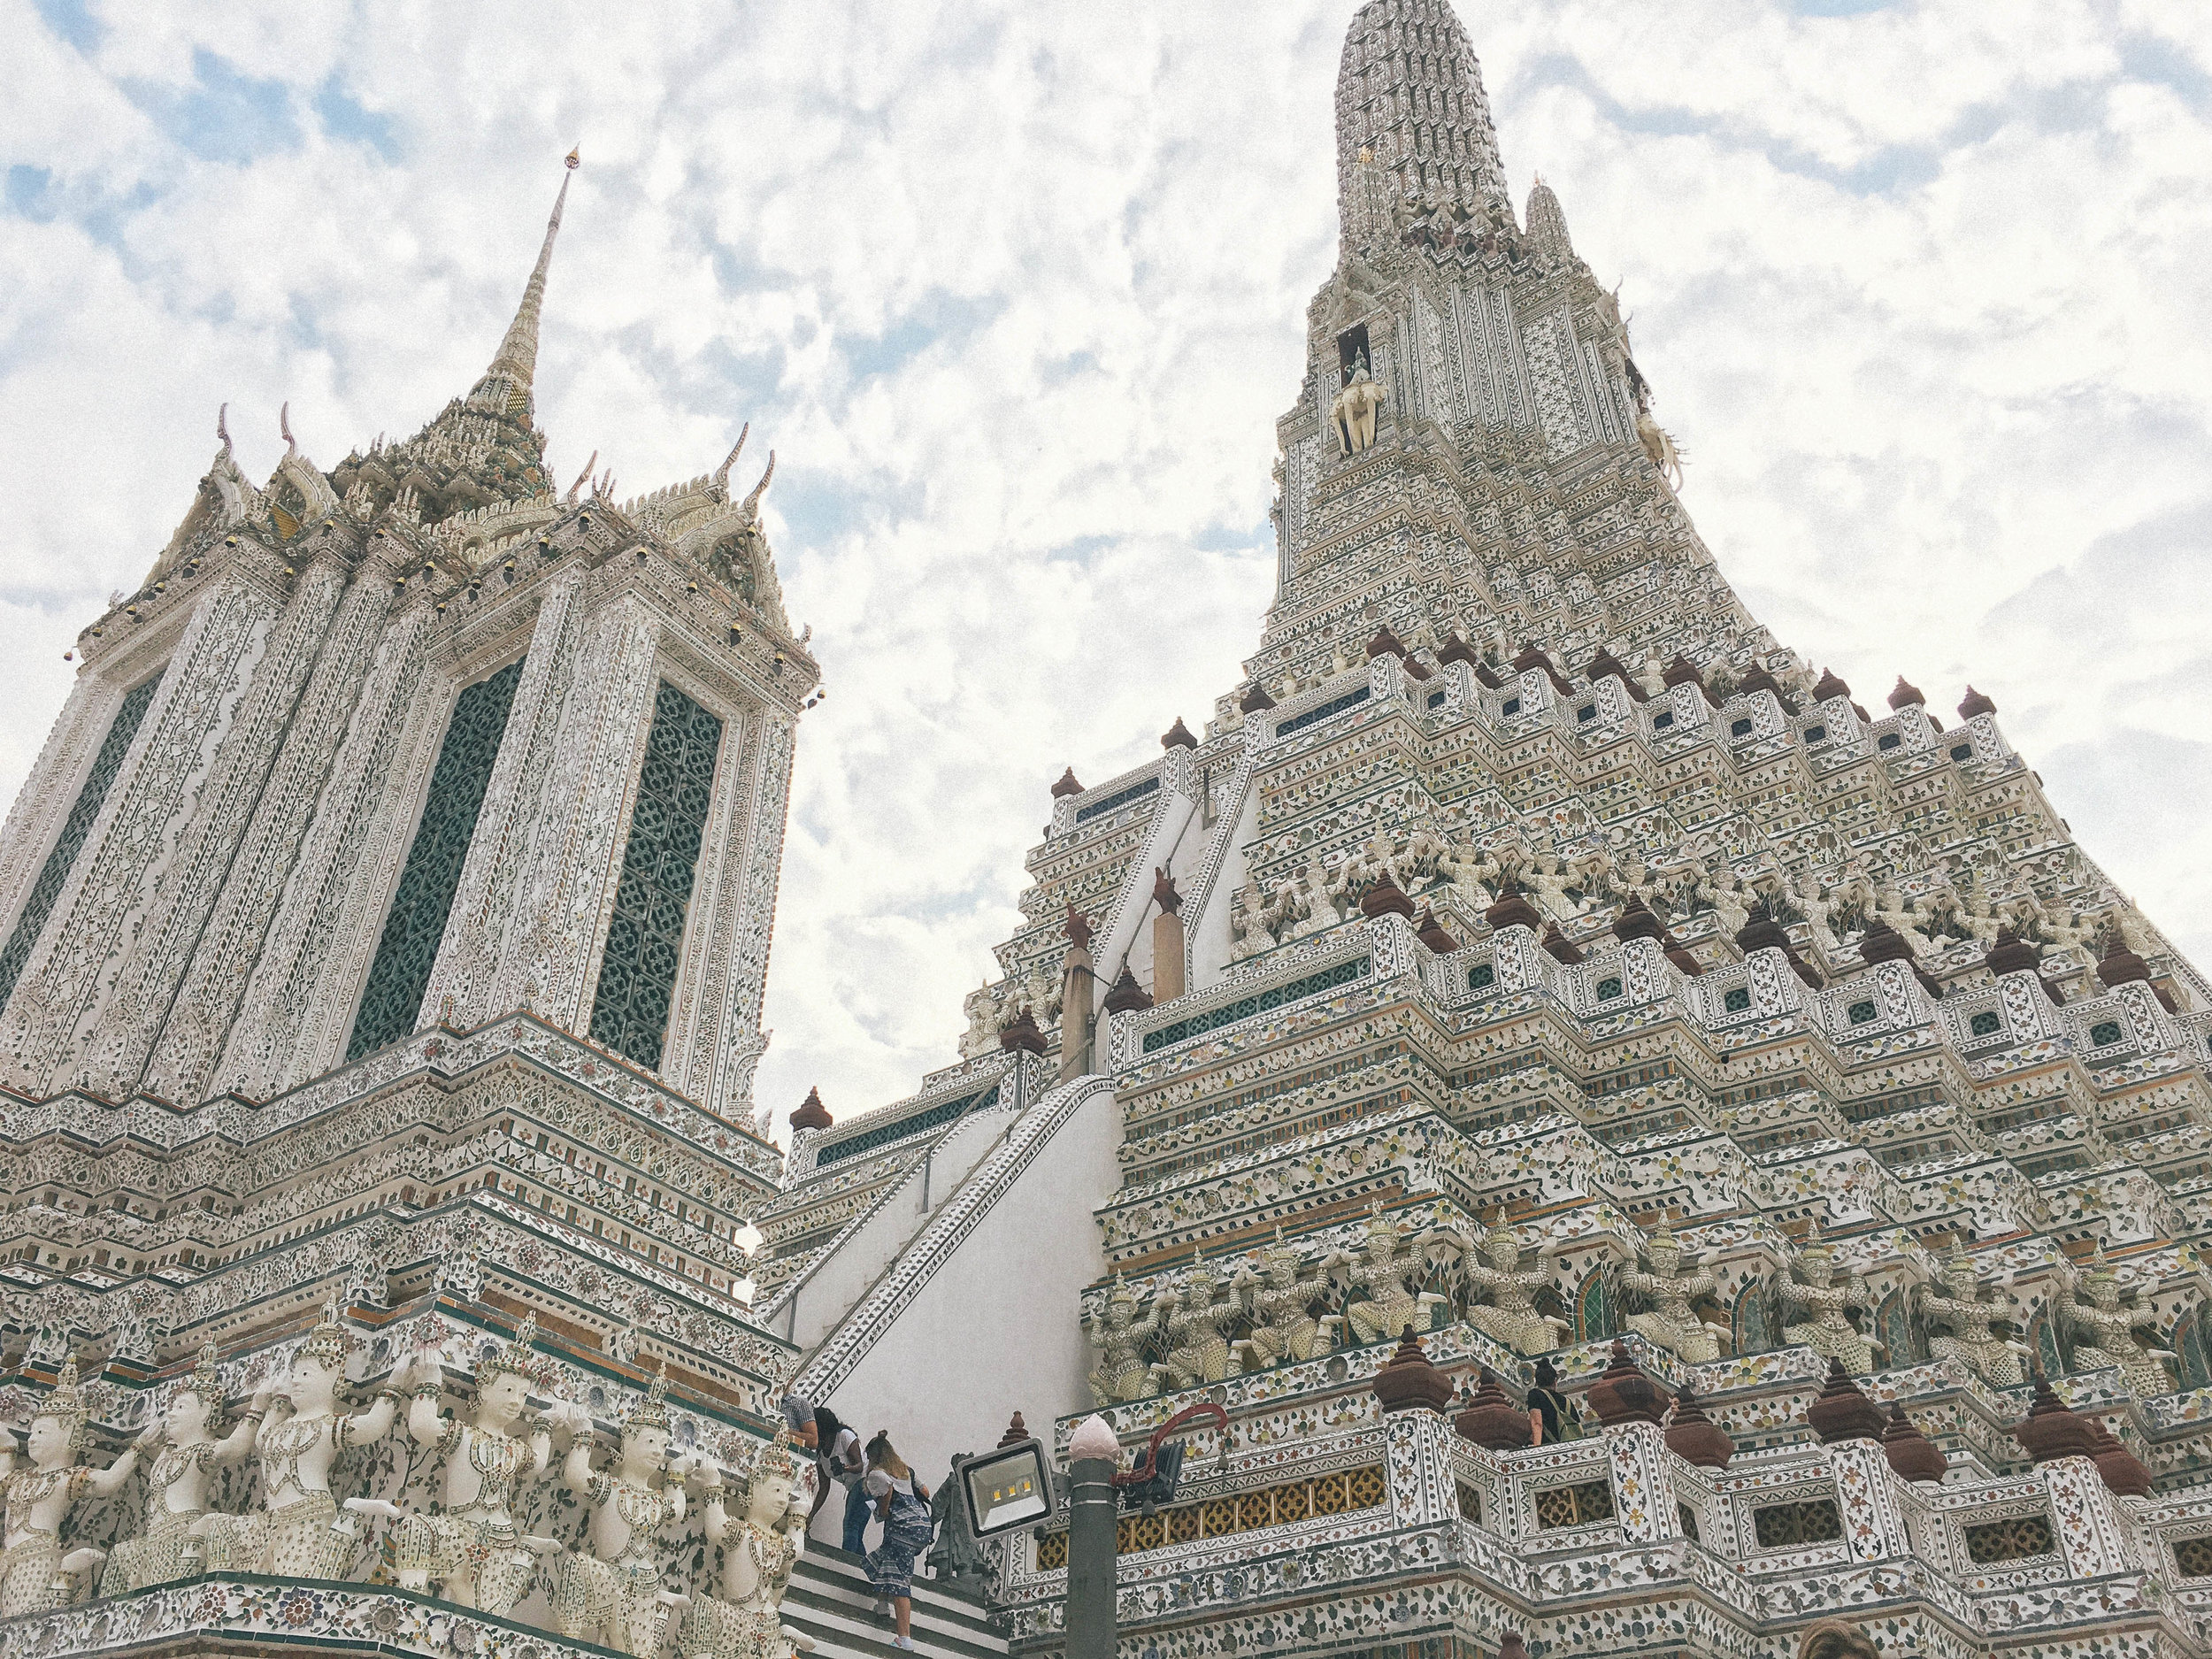 Wat Arun, a temple in Bangkok. The temples in Thailand are magnificent and insanely elaborate.